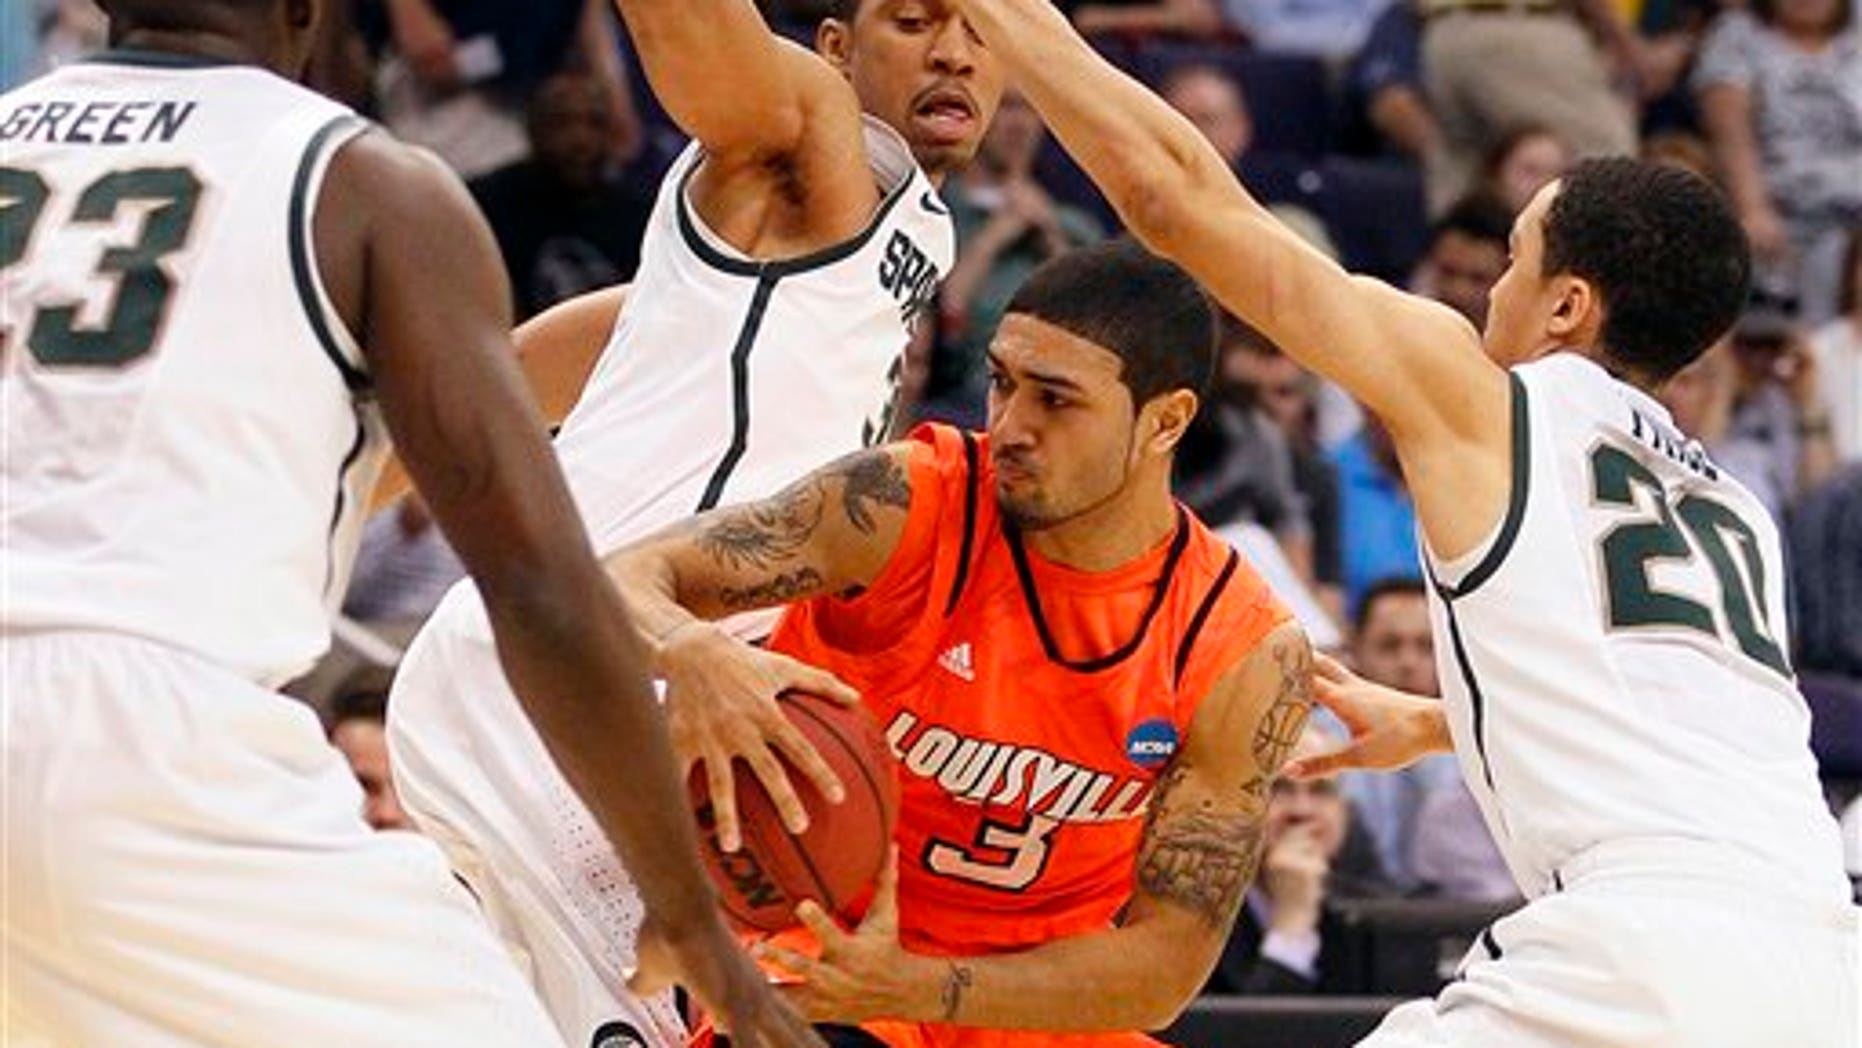 March 22, 2012: Louisville's Peyton Siva (3) is trapped by Michigan State defenders, from left, Draymond Green, Brandan Kearney and Travis Trice during the first half of an NCAA men's college basketball tournament West Regional semifinal on Thursday in Phoenix.